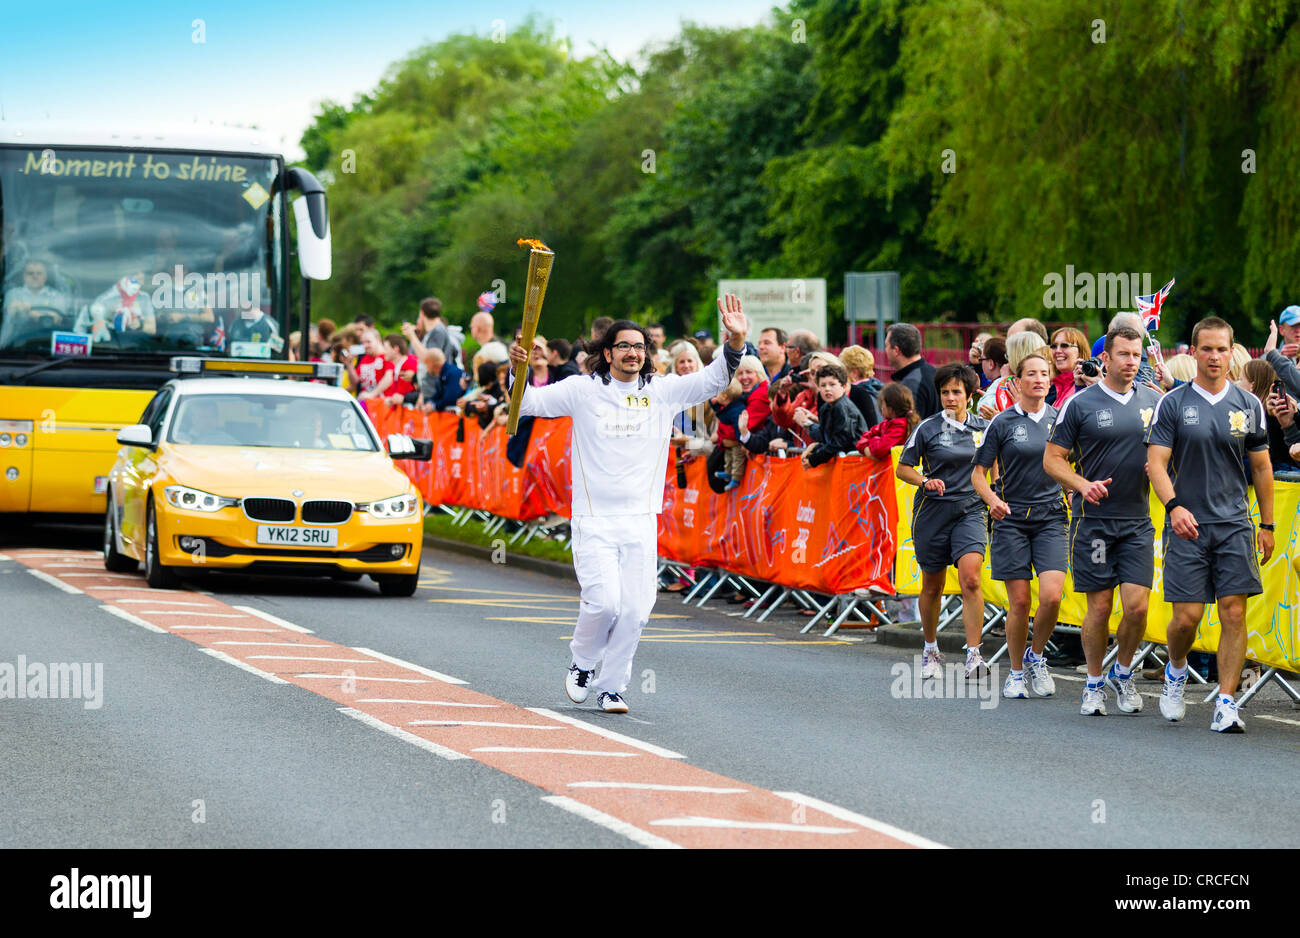 2012 Olympic Torch Relay team running through Stockton on Tees - Stock Image